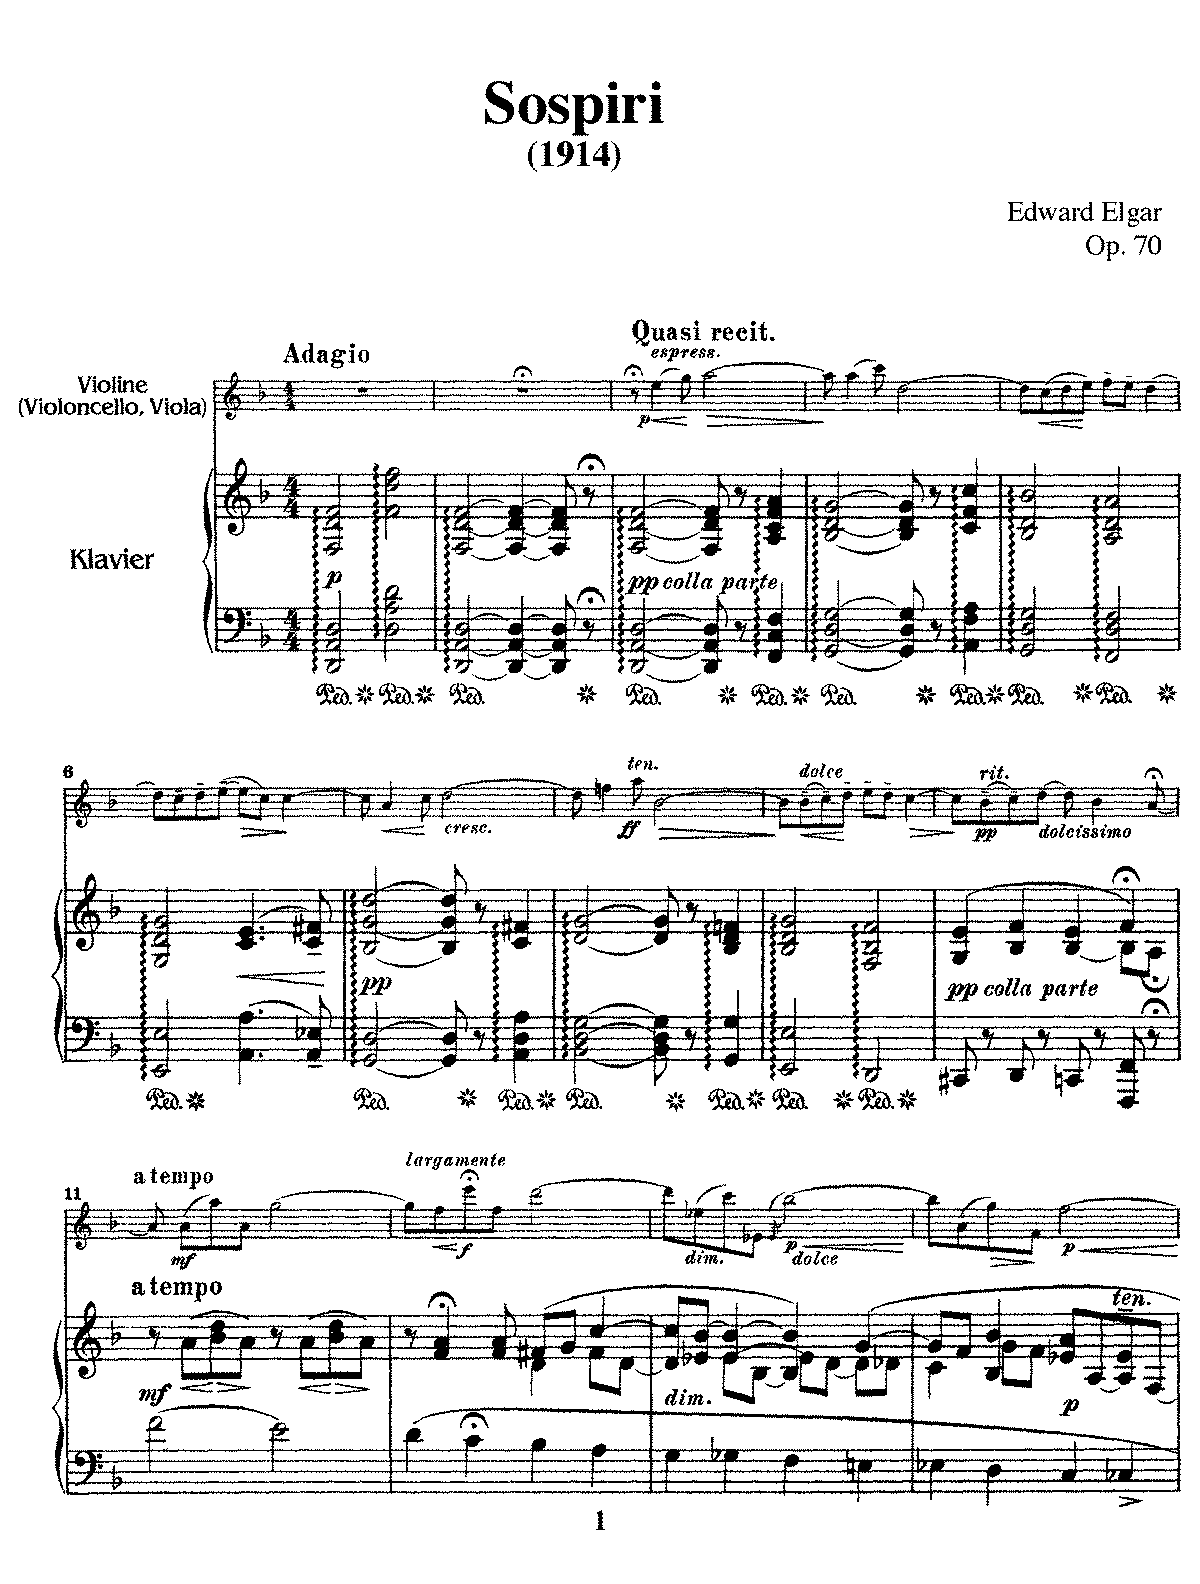 PMLP57151-Elgar - Sospiri Op70 for cello and piano.pdf